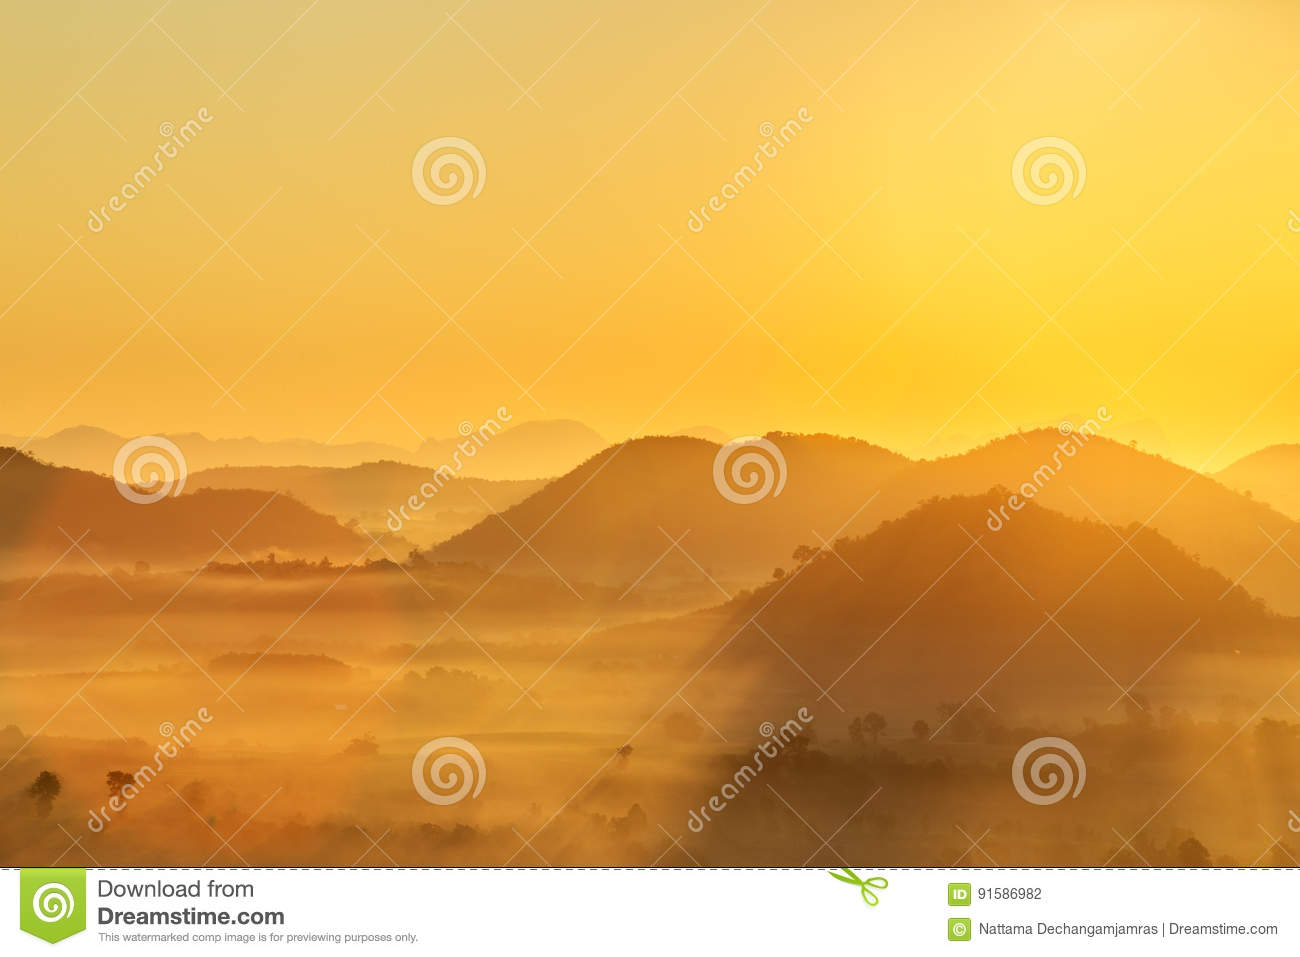 Sunrise and The Mist with Yellow Flowers Foreground in Winter ,This`s Mountain looks like Mount Fuji in Japan., Landscape at Phu H